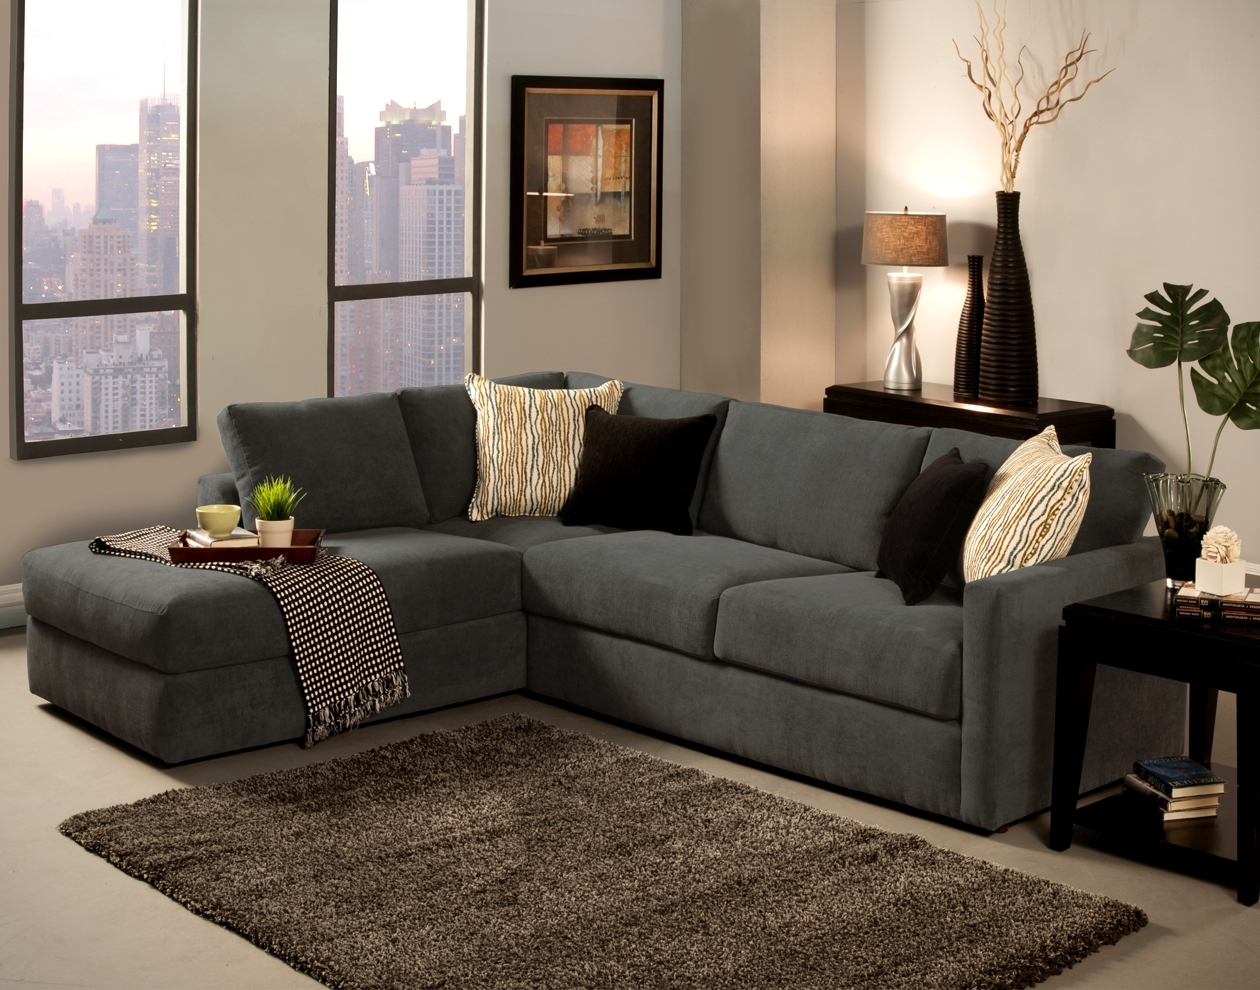 Current Sofa ~ Luxury Leather Sofa With Chaise Lounge Cute Small Sectional Intended For Sectionals With Chaise Lounge (View 5 of 15)